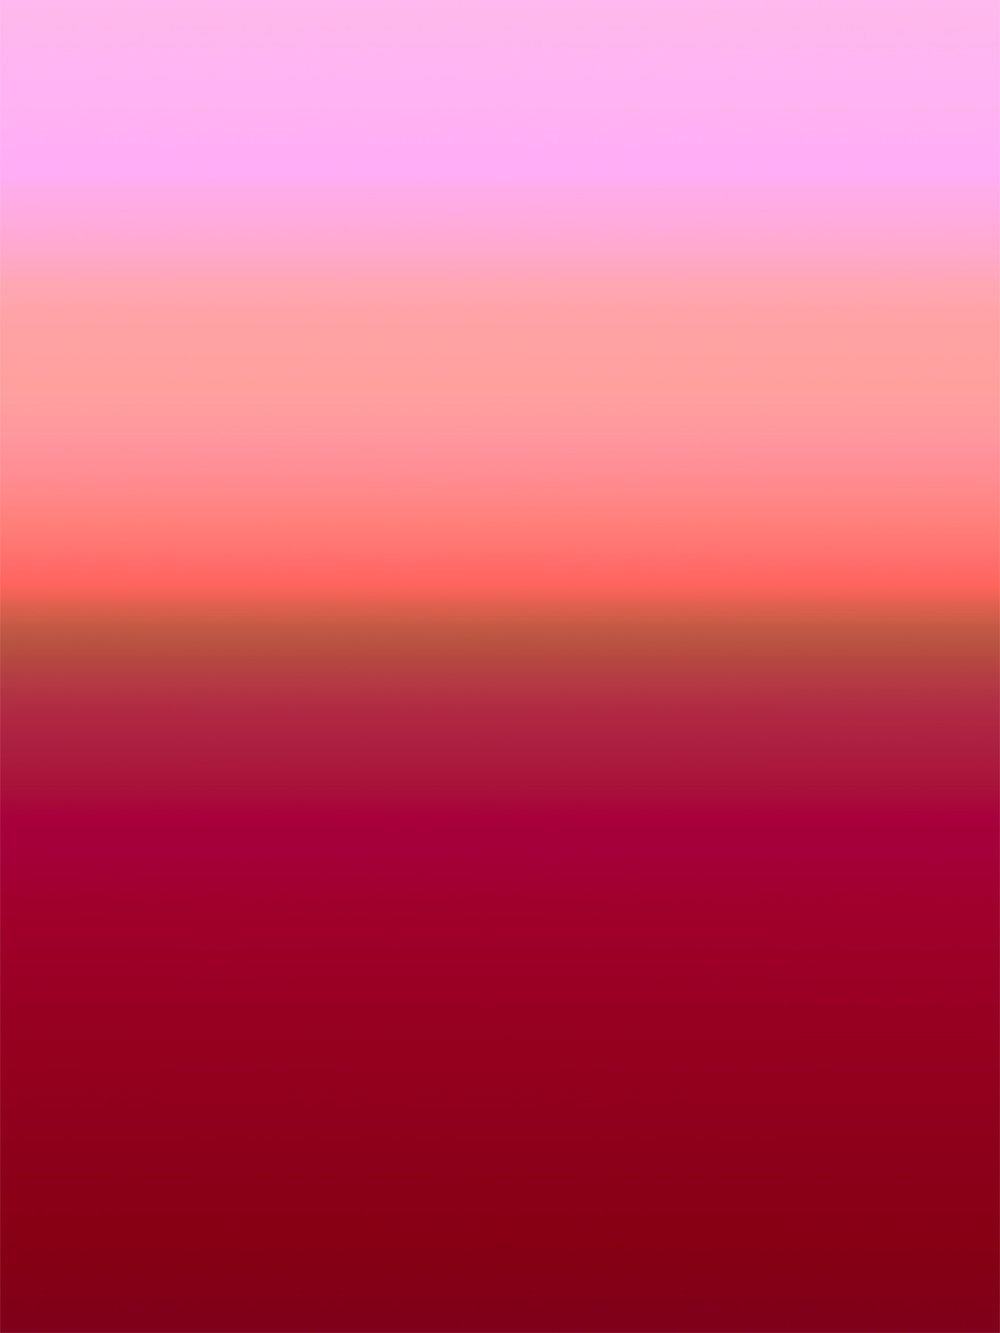 aapo nikkanen abstract sunset.jpg